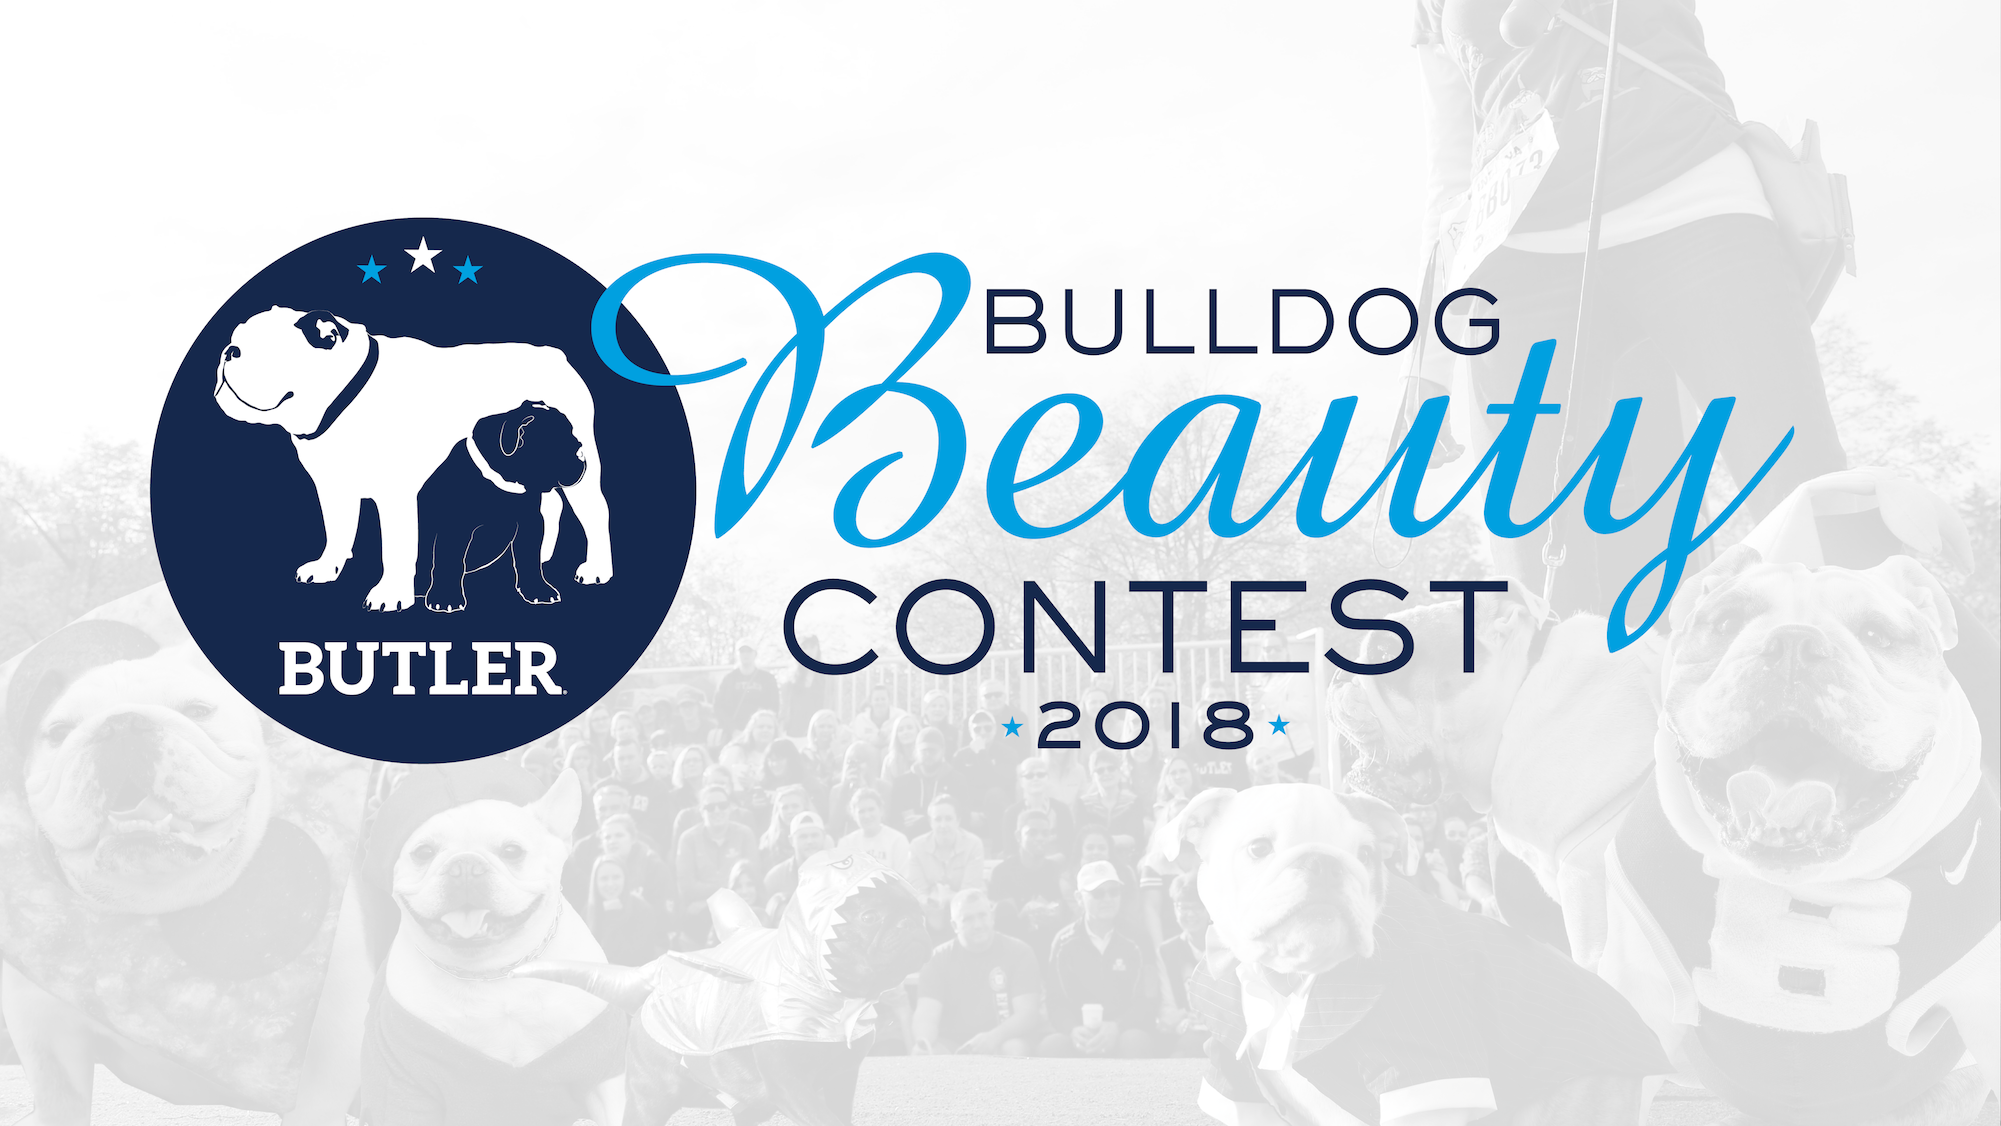 2018 Bulldog Beauty Contest